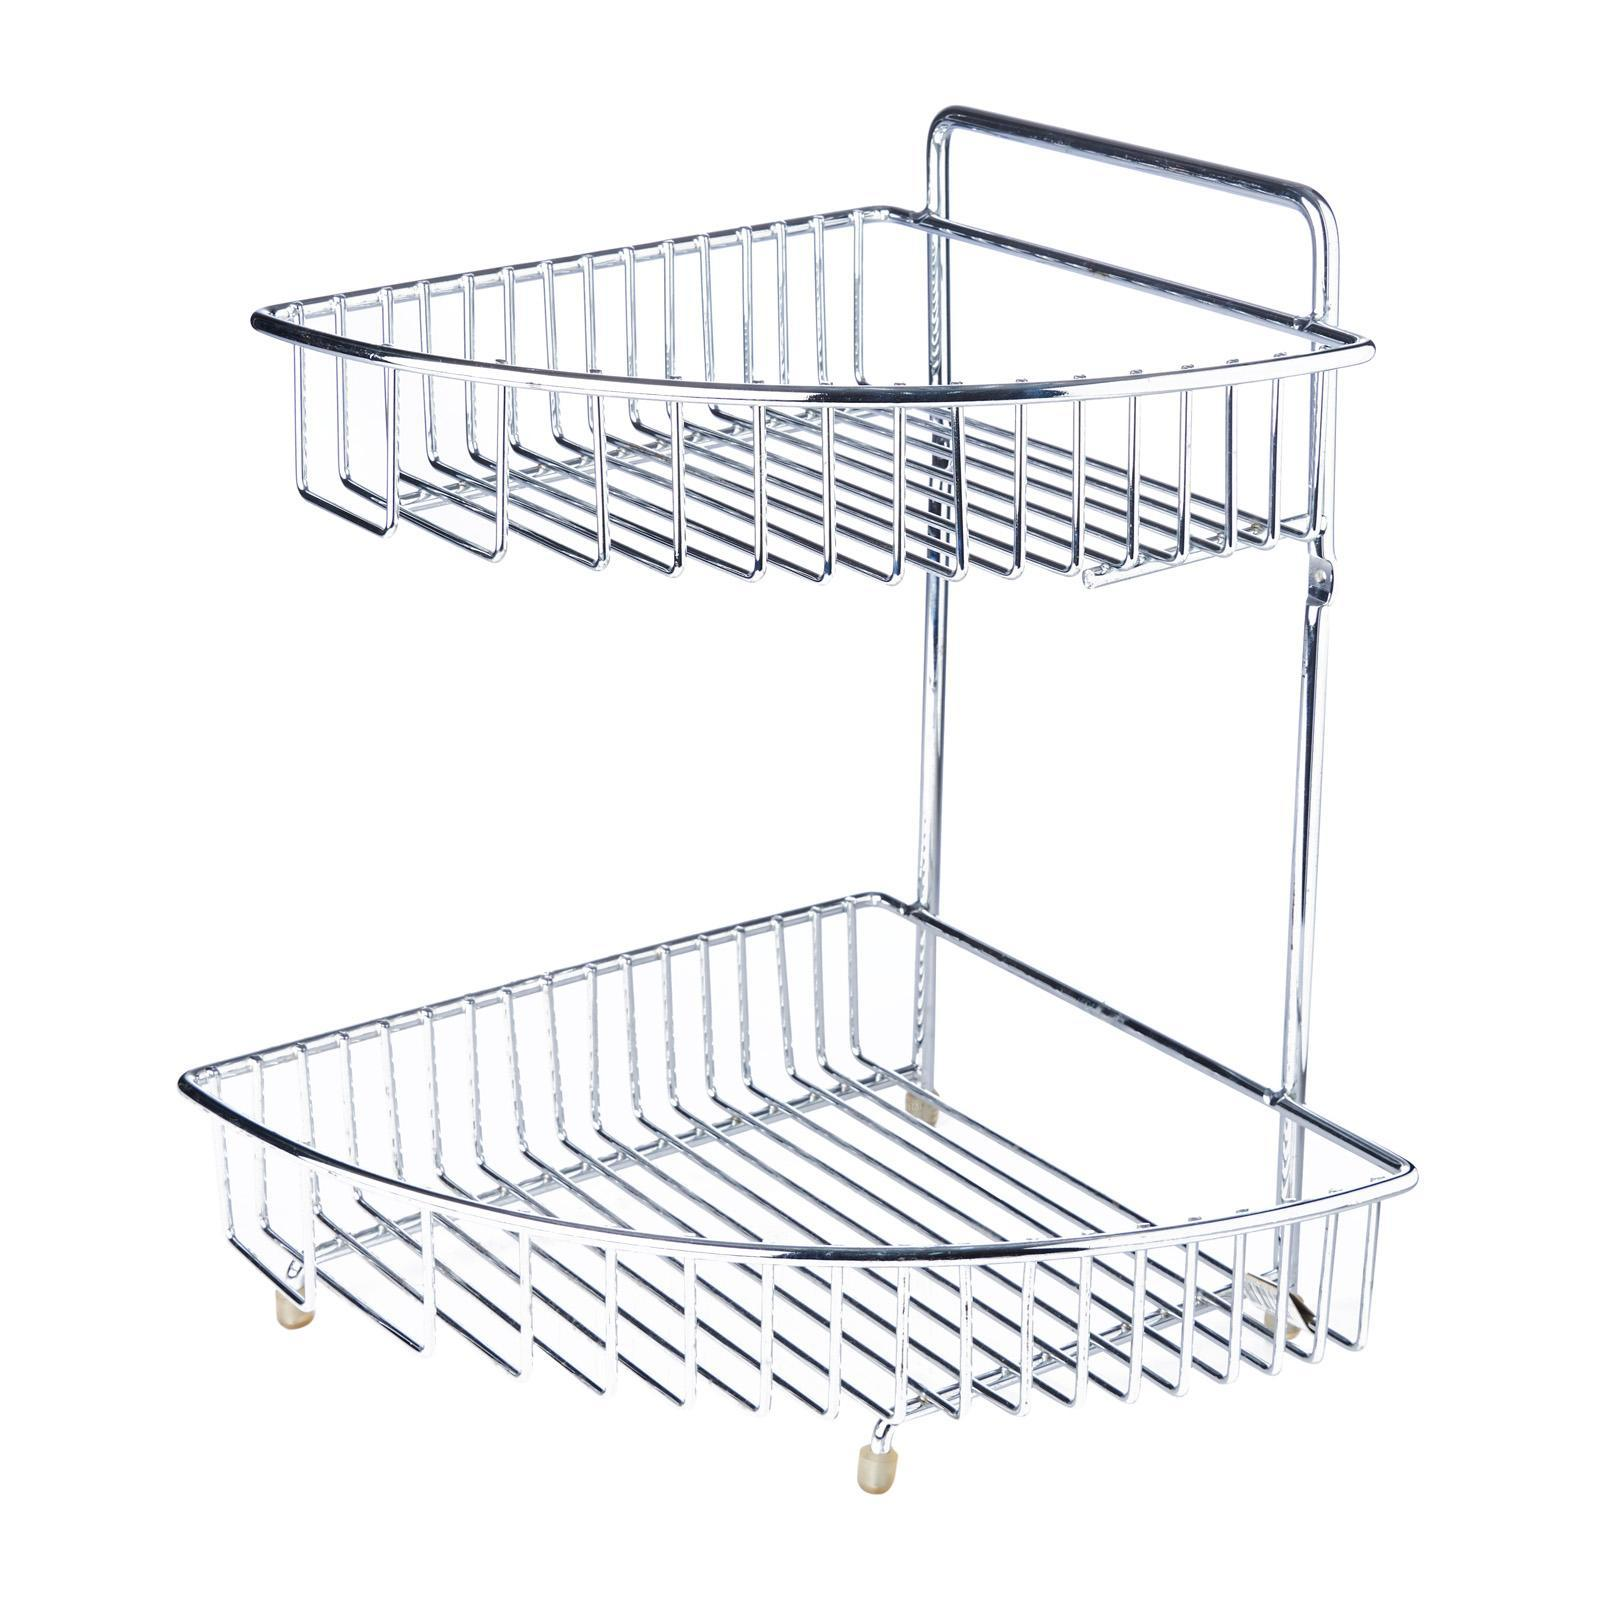 Vesta Chrome 2-Tier Corner Rack L28 W27 H36Cm